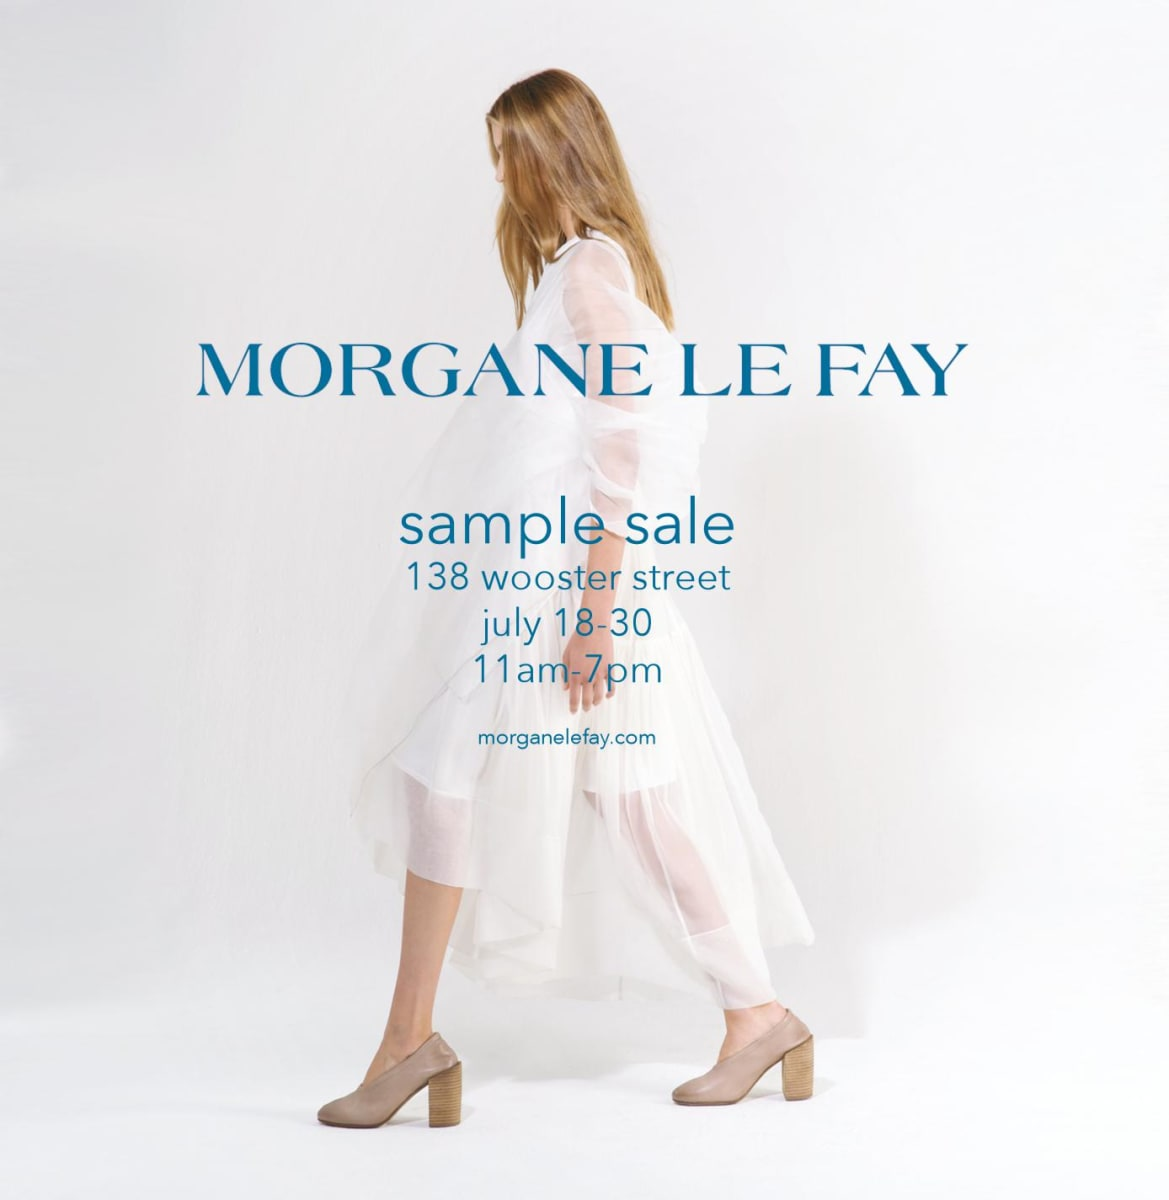 Morgane Le Fay Sample Sale, July 18th - 30th (New York, NY)